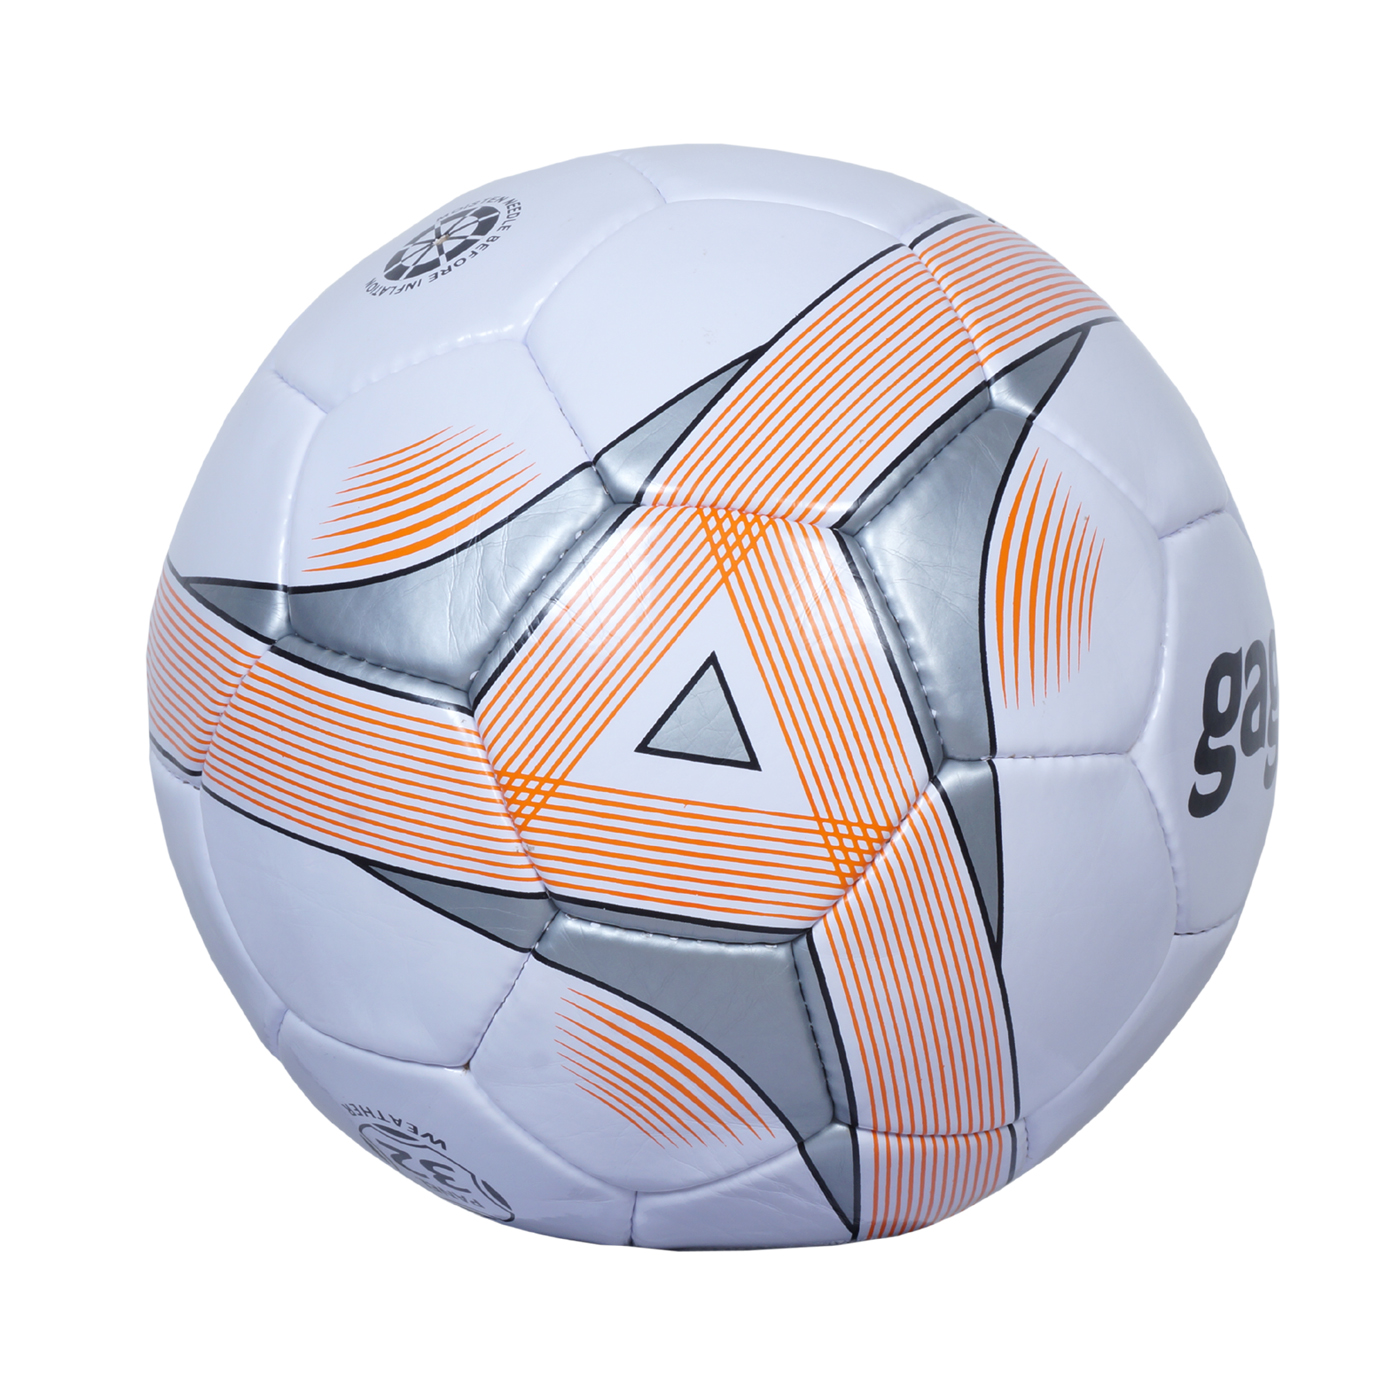 Futsal Ball Manufacturers, Wholesale Suppliers